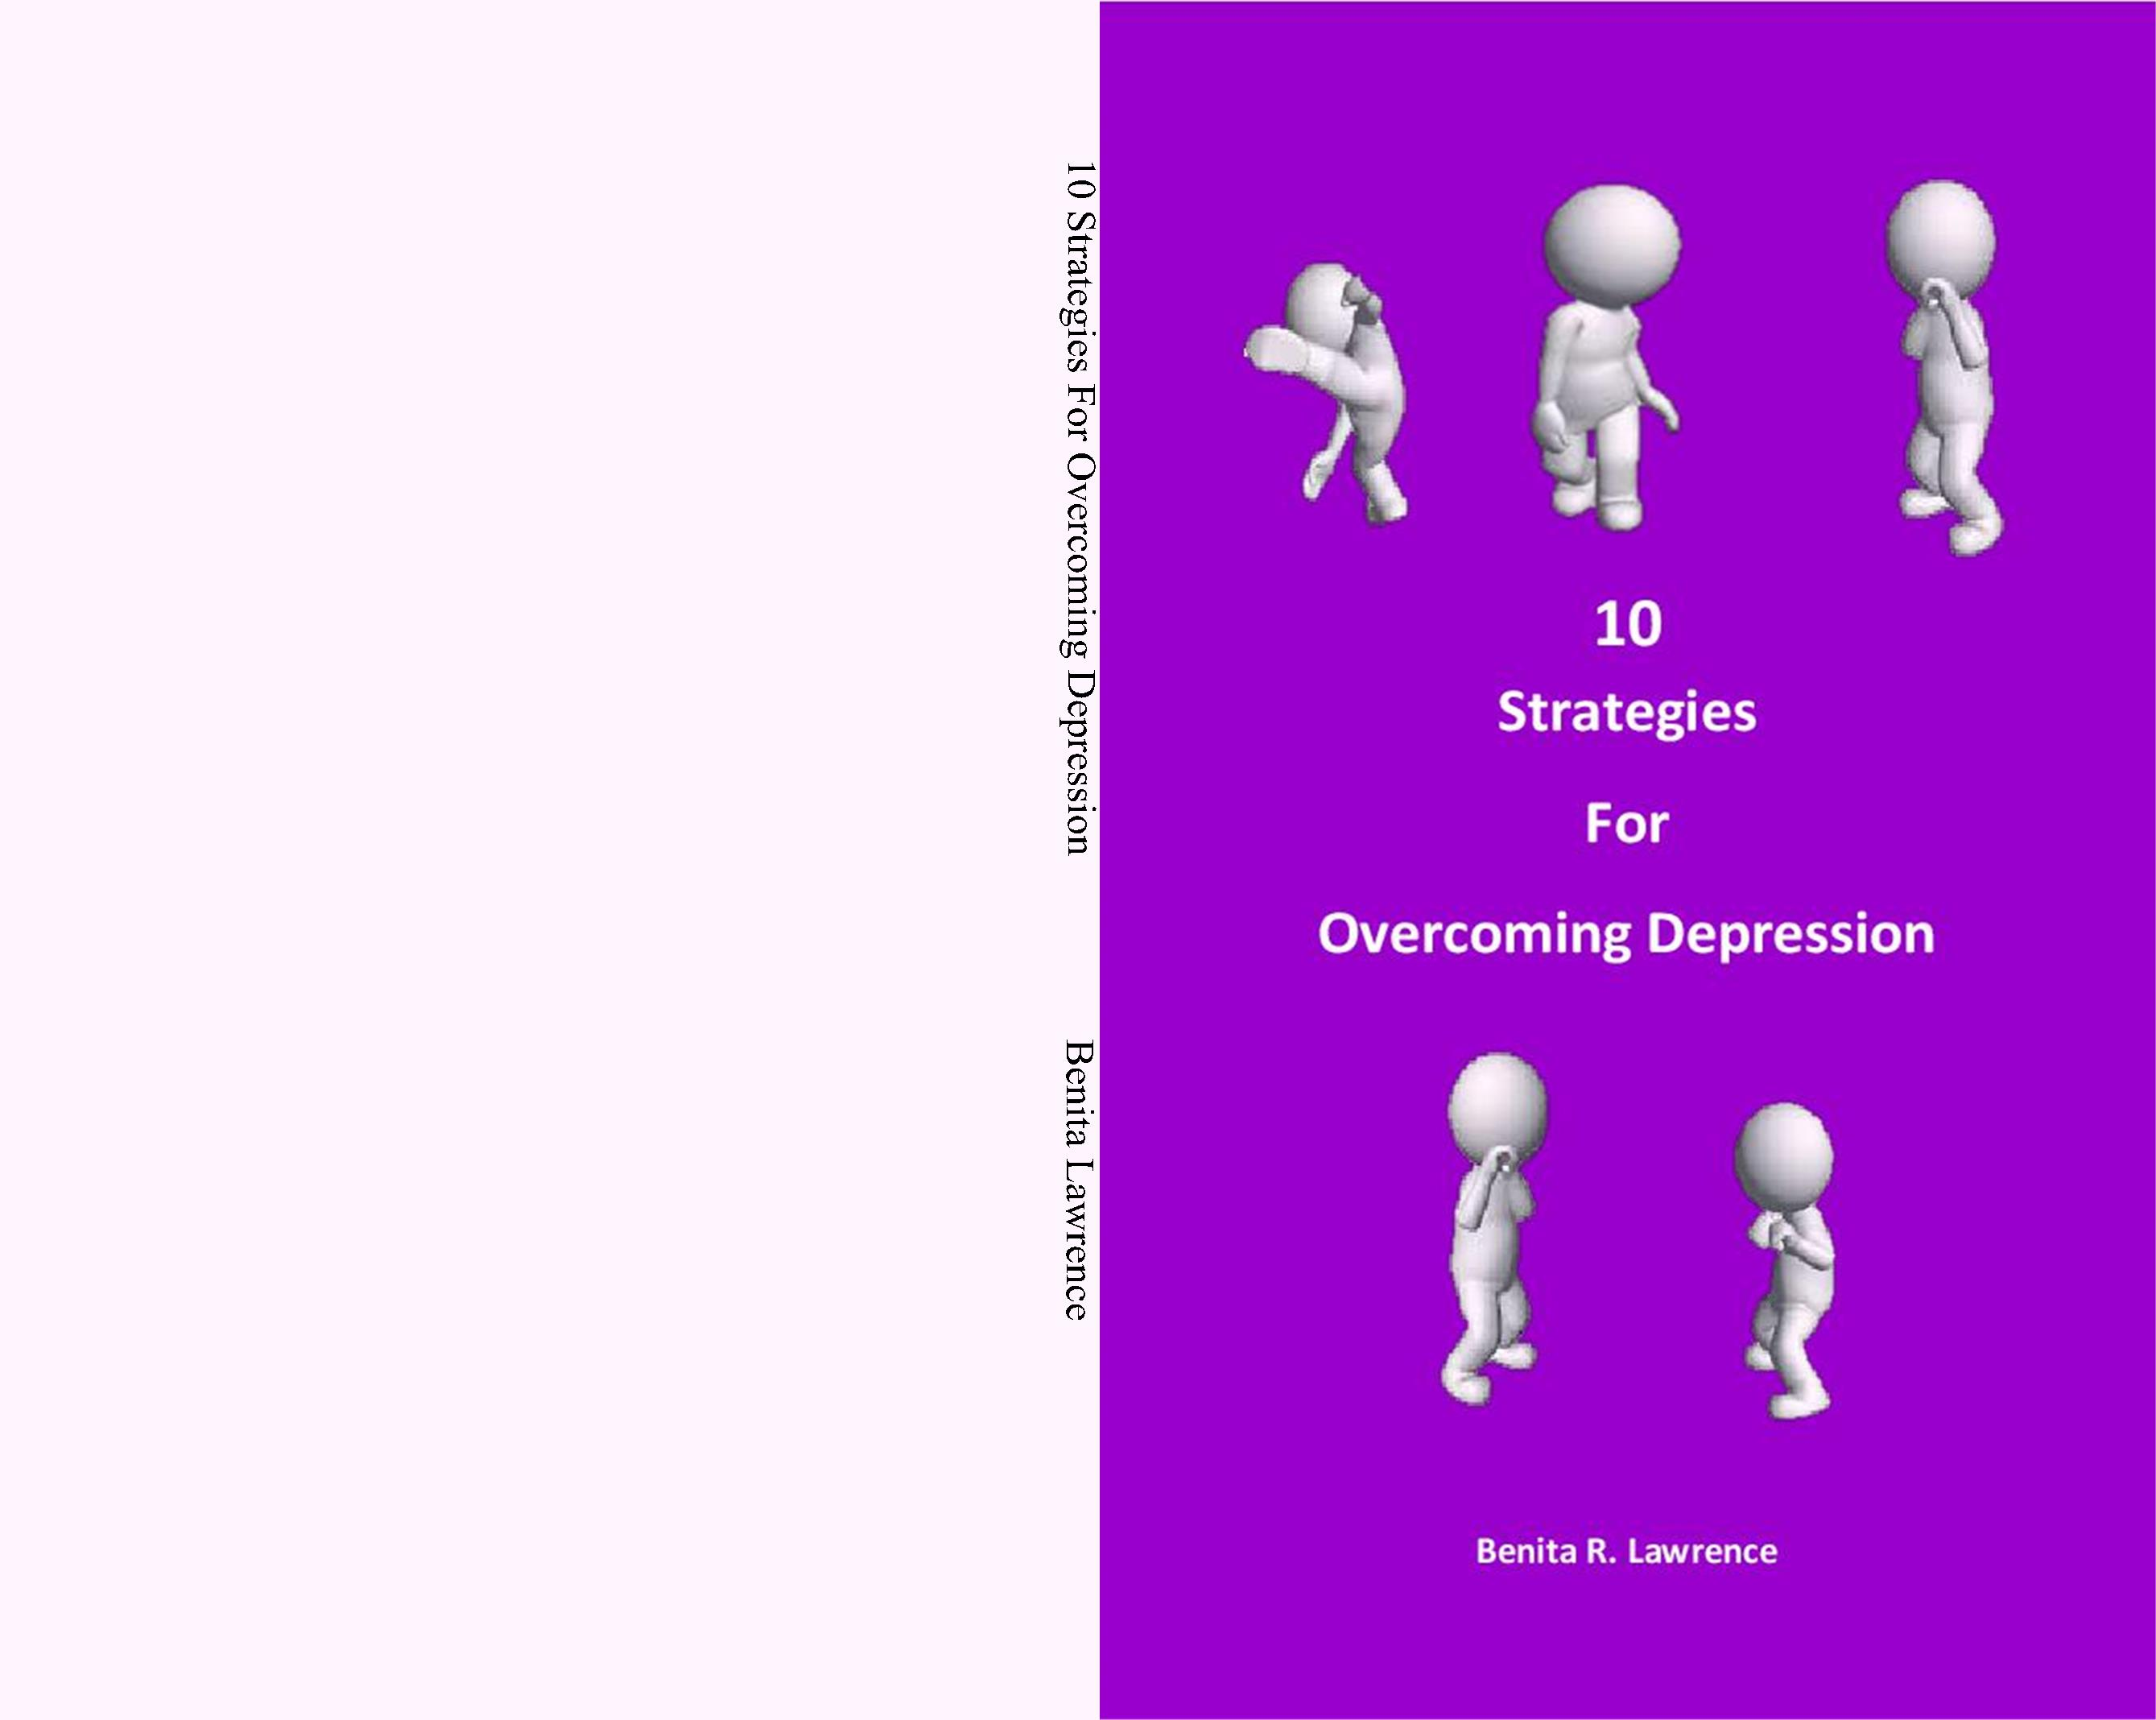 10 Strategies For Overcoming Depression cover image